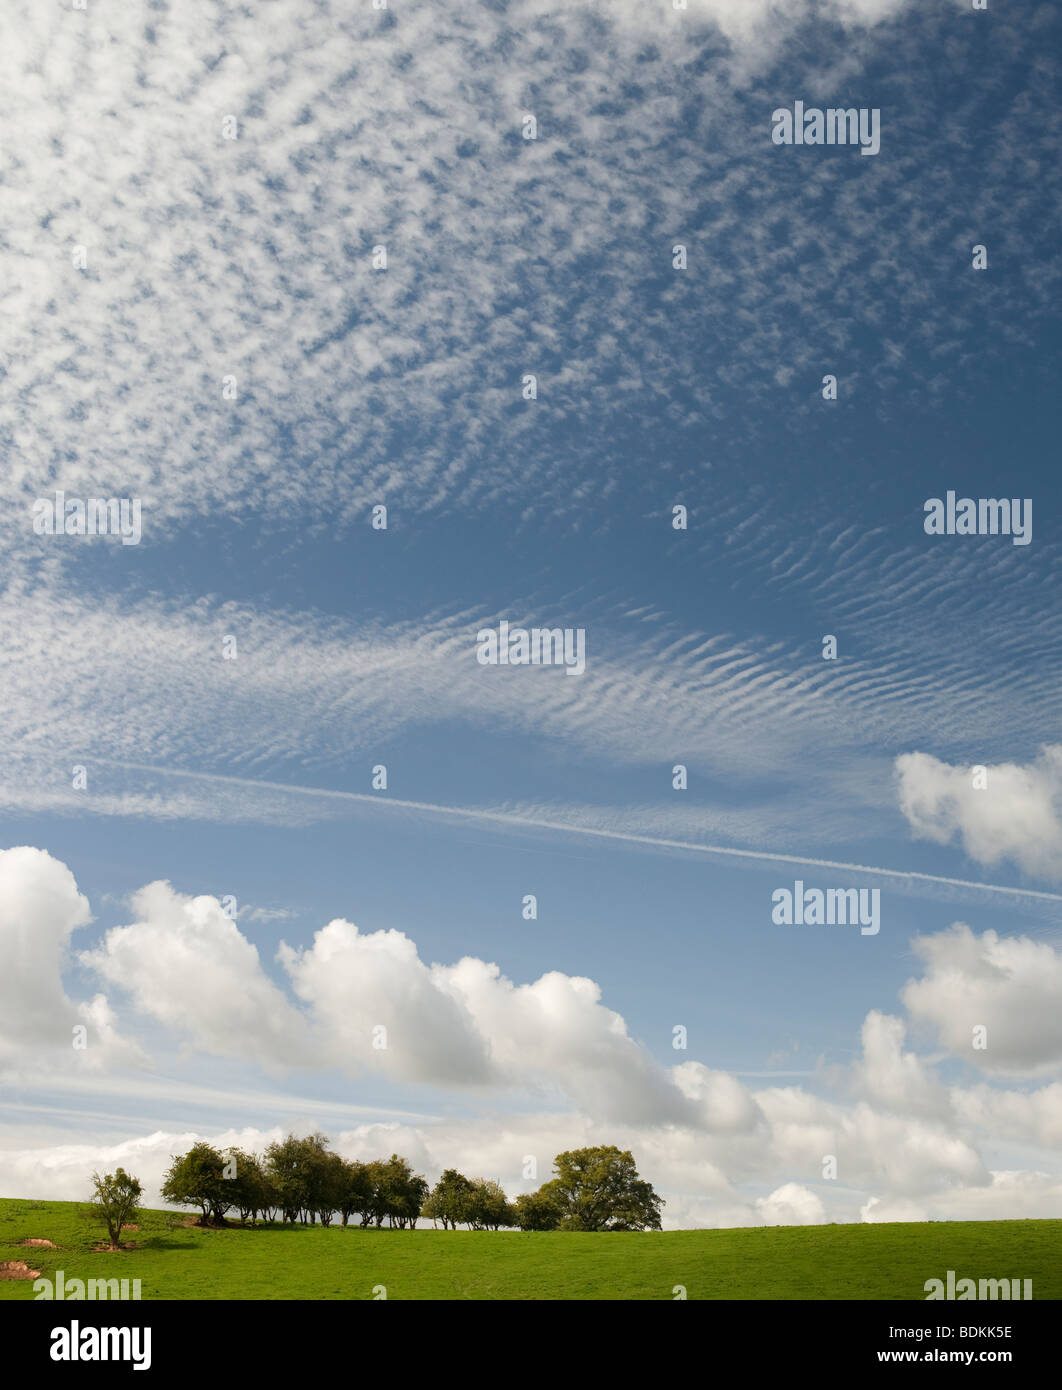 Rural shropshire countryside near ludlow, green grass, trees and cloudy blue summer skies - Stock Image